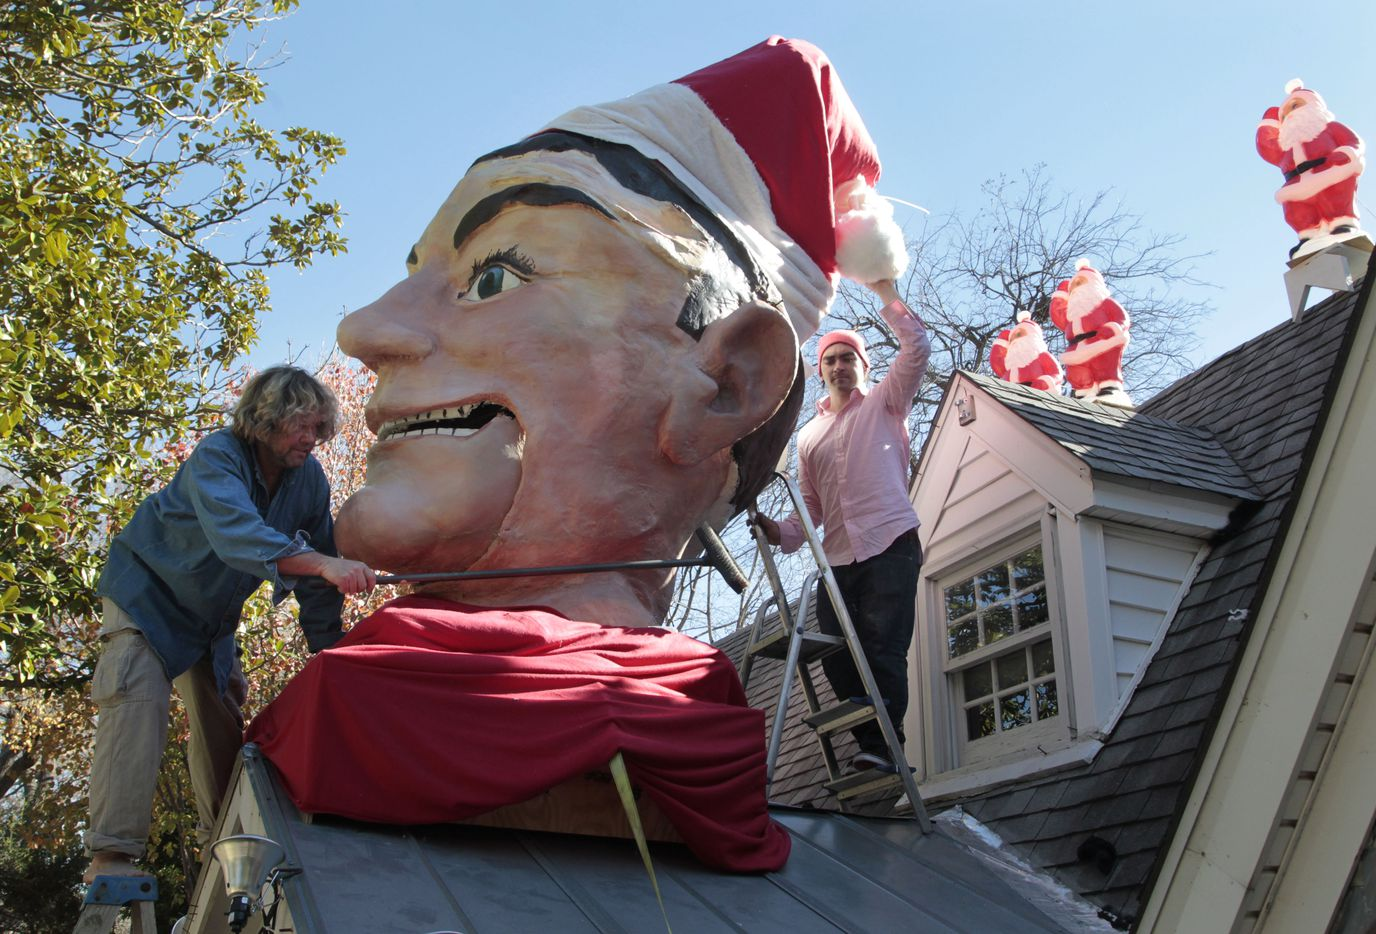 In 2012, Wayne Smith and his neighbor Joe England installed a Santa Claus cap on Big Tex.